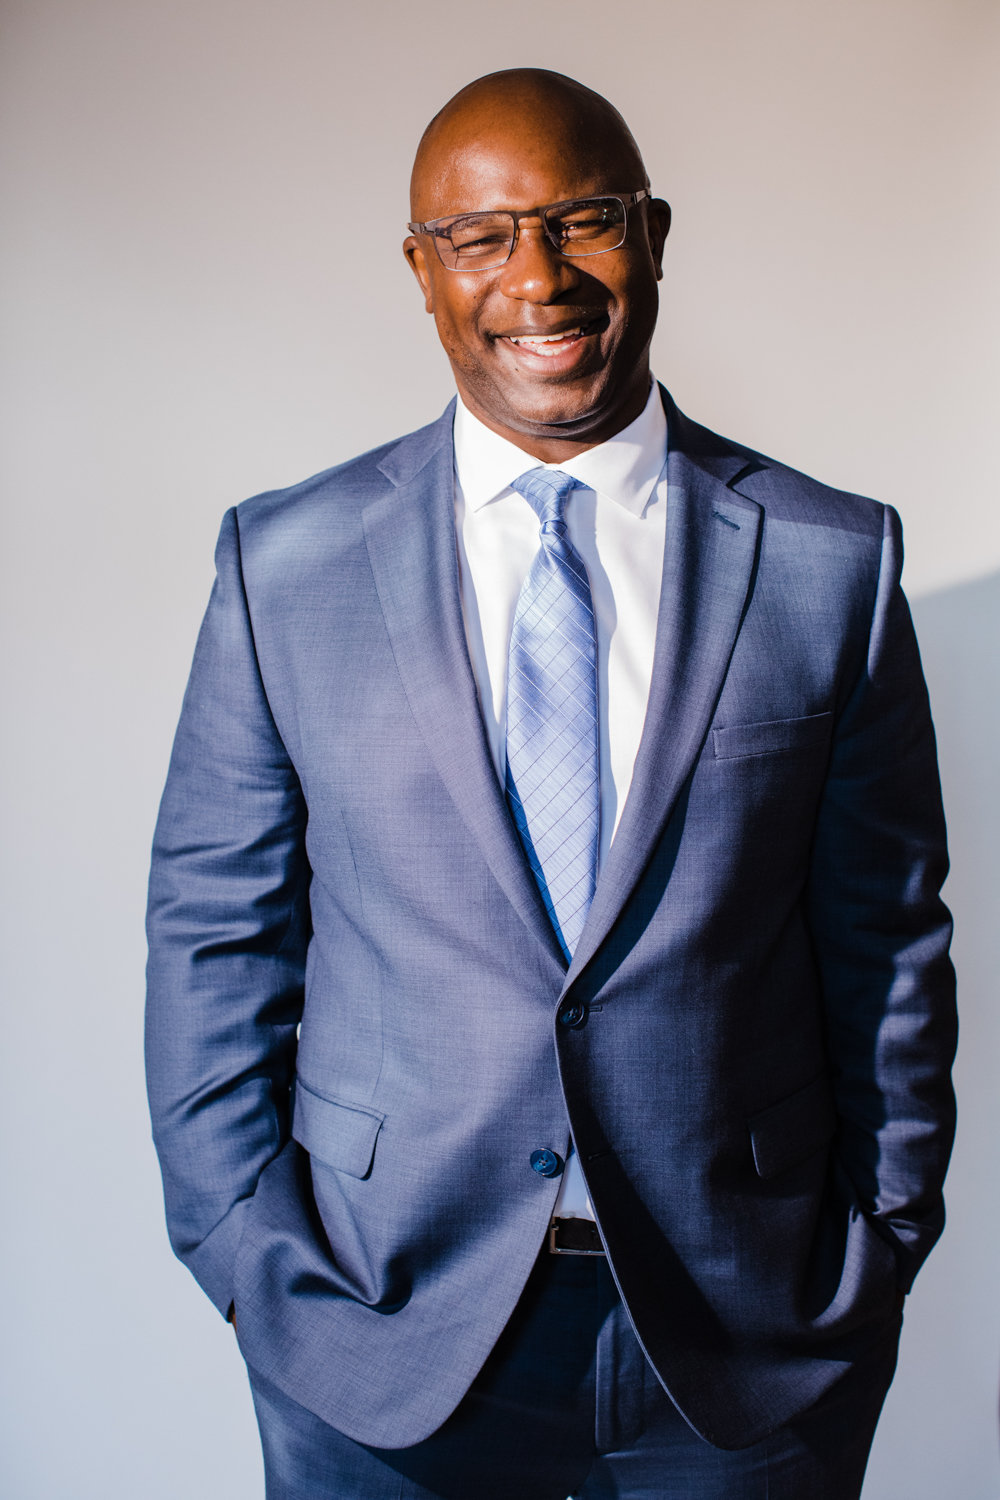 Jamaal Bowman has mounted a sizable campaign to unseat U.S. Rep. Eliot Engel in the Democratic primary, and has called for a one-on-one debate with the incumbent ahead of the June 23 primary.